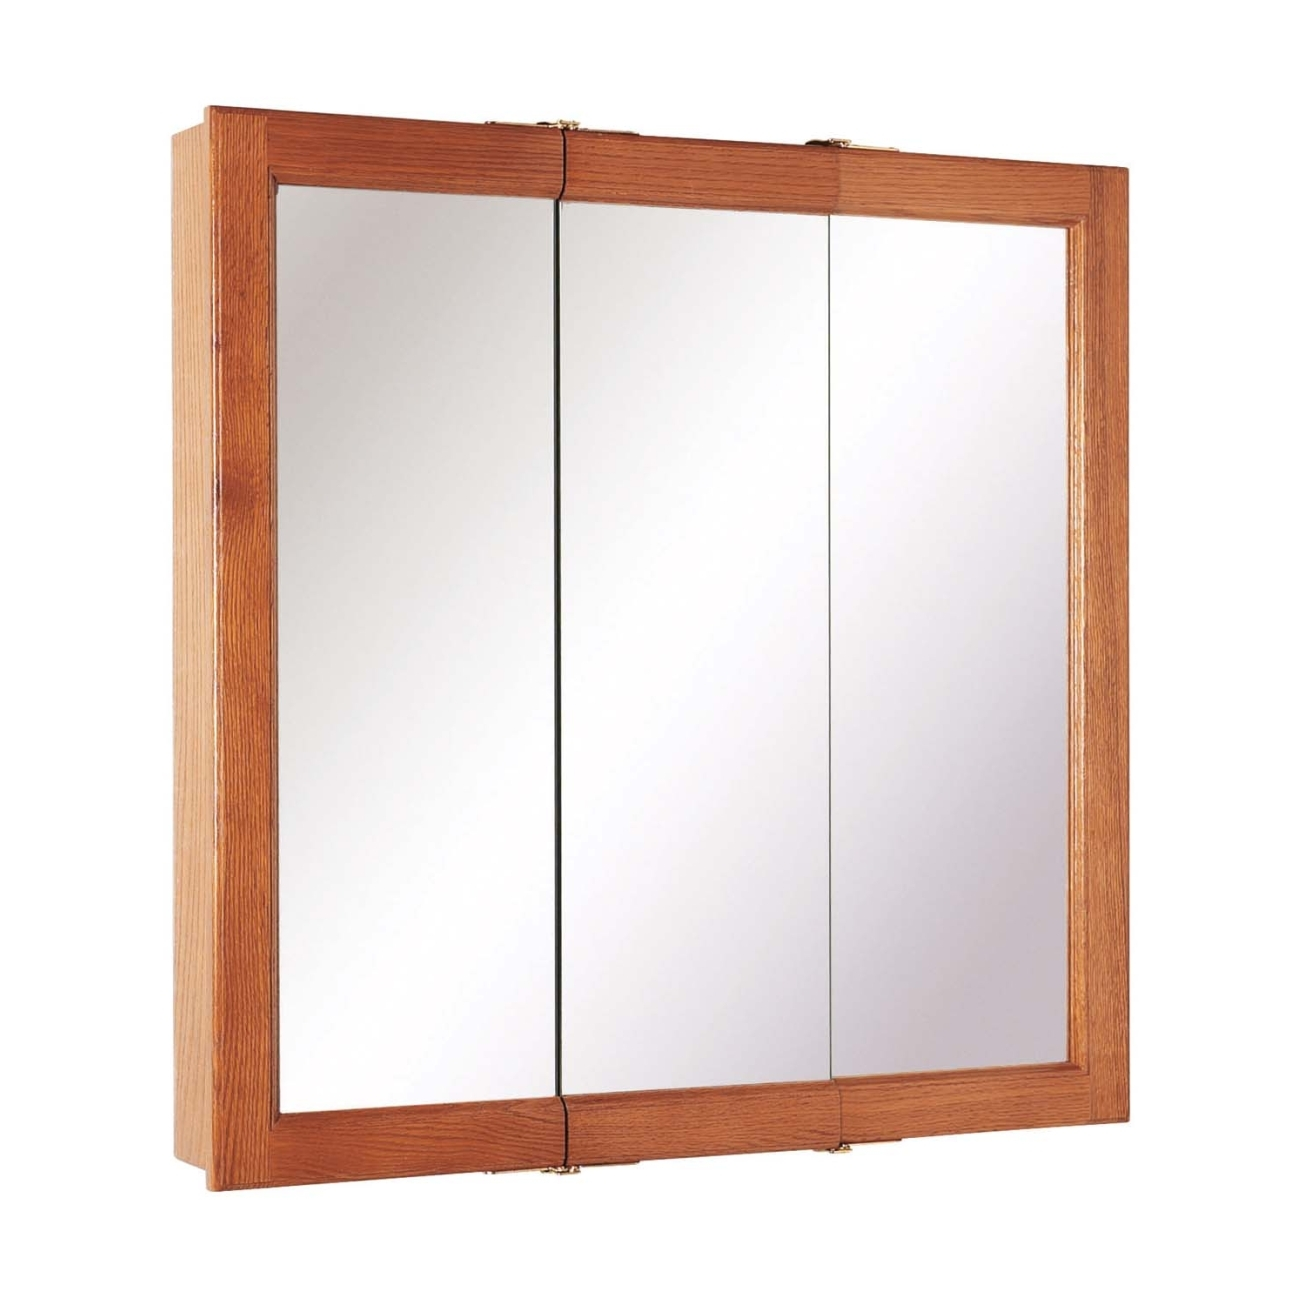 Permalink to Bathroom Cabinet Mirror Replacement